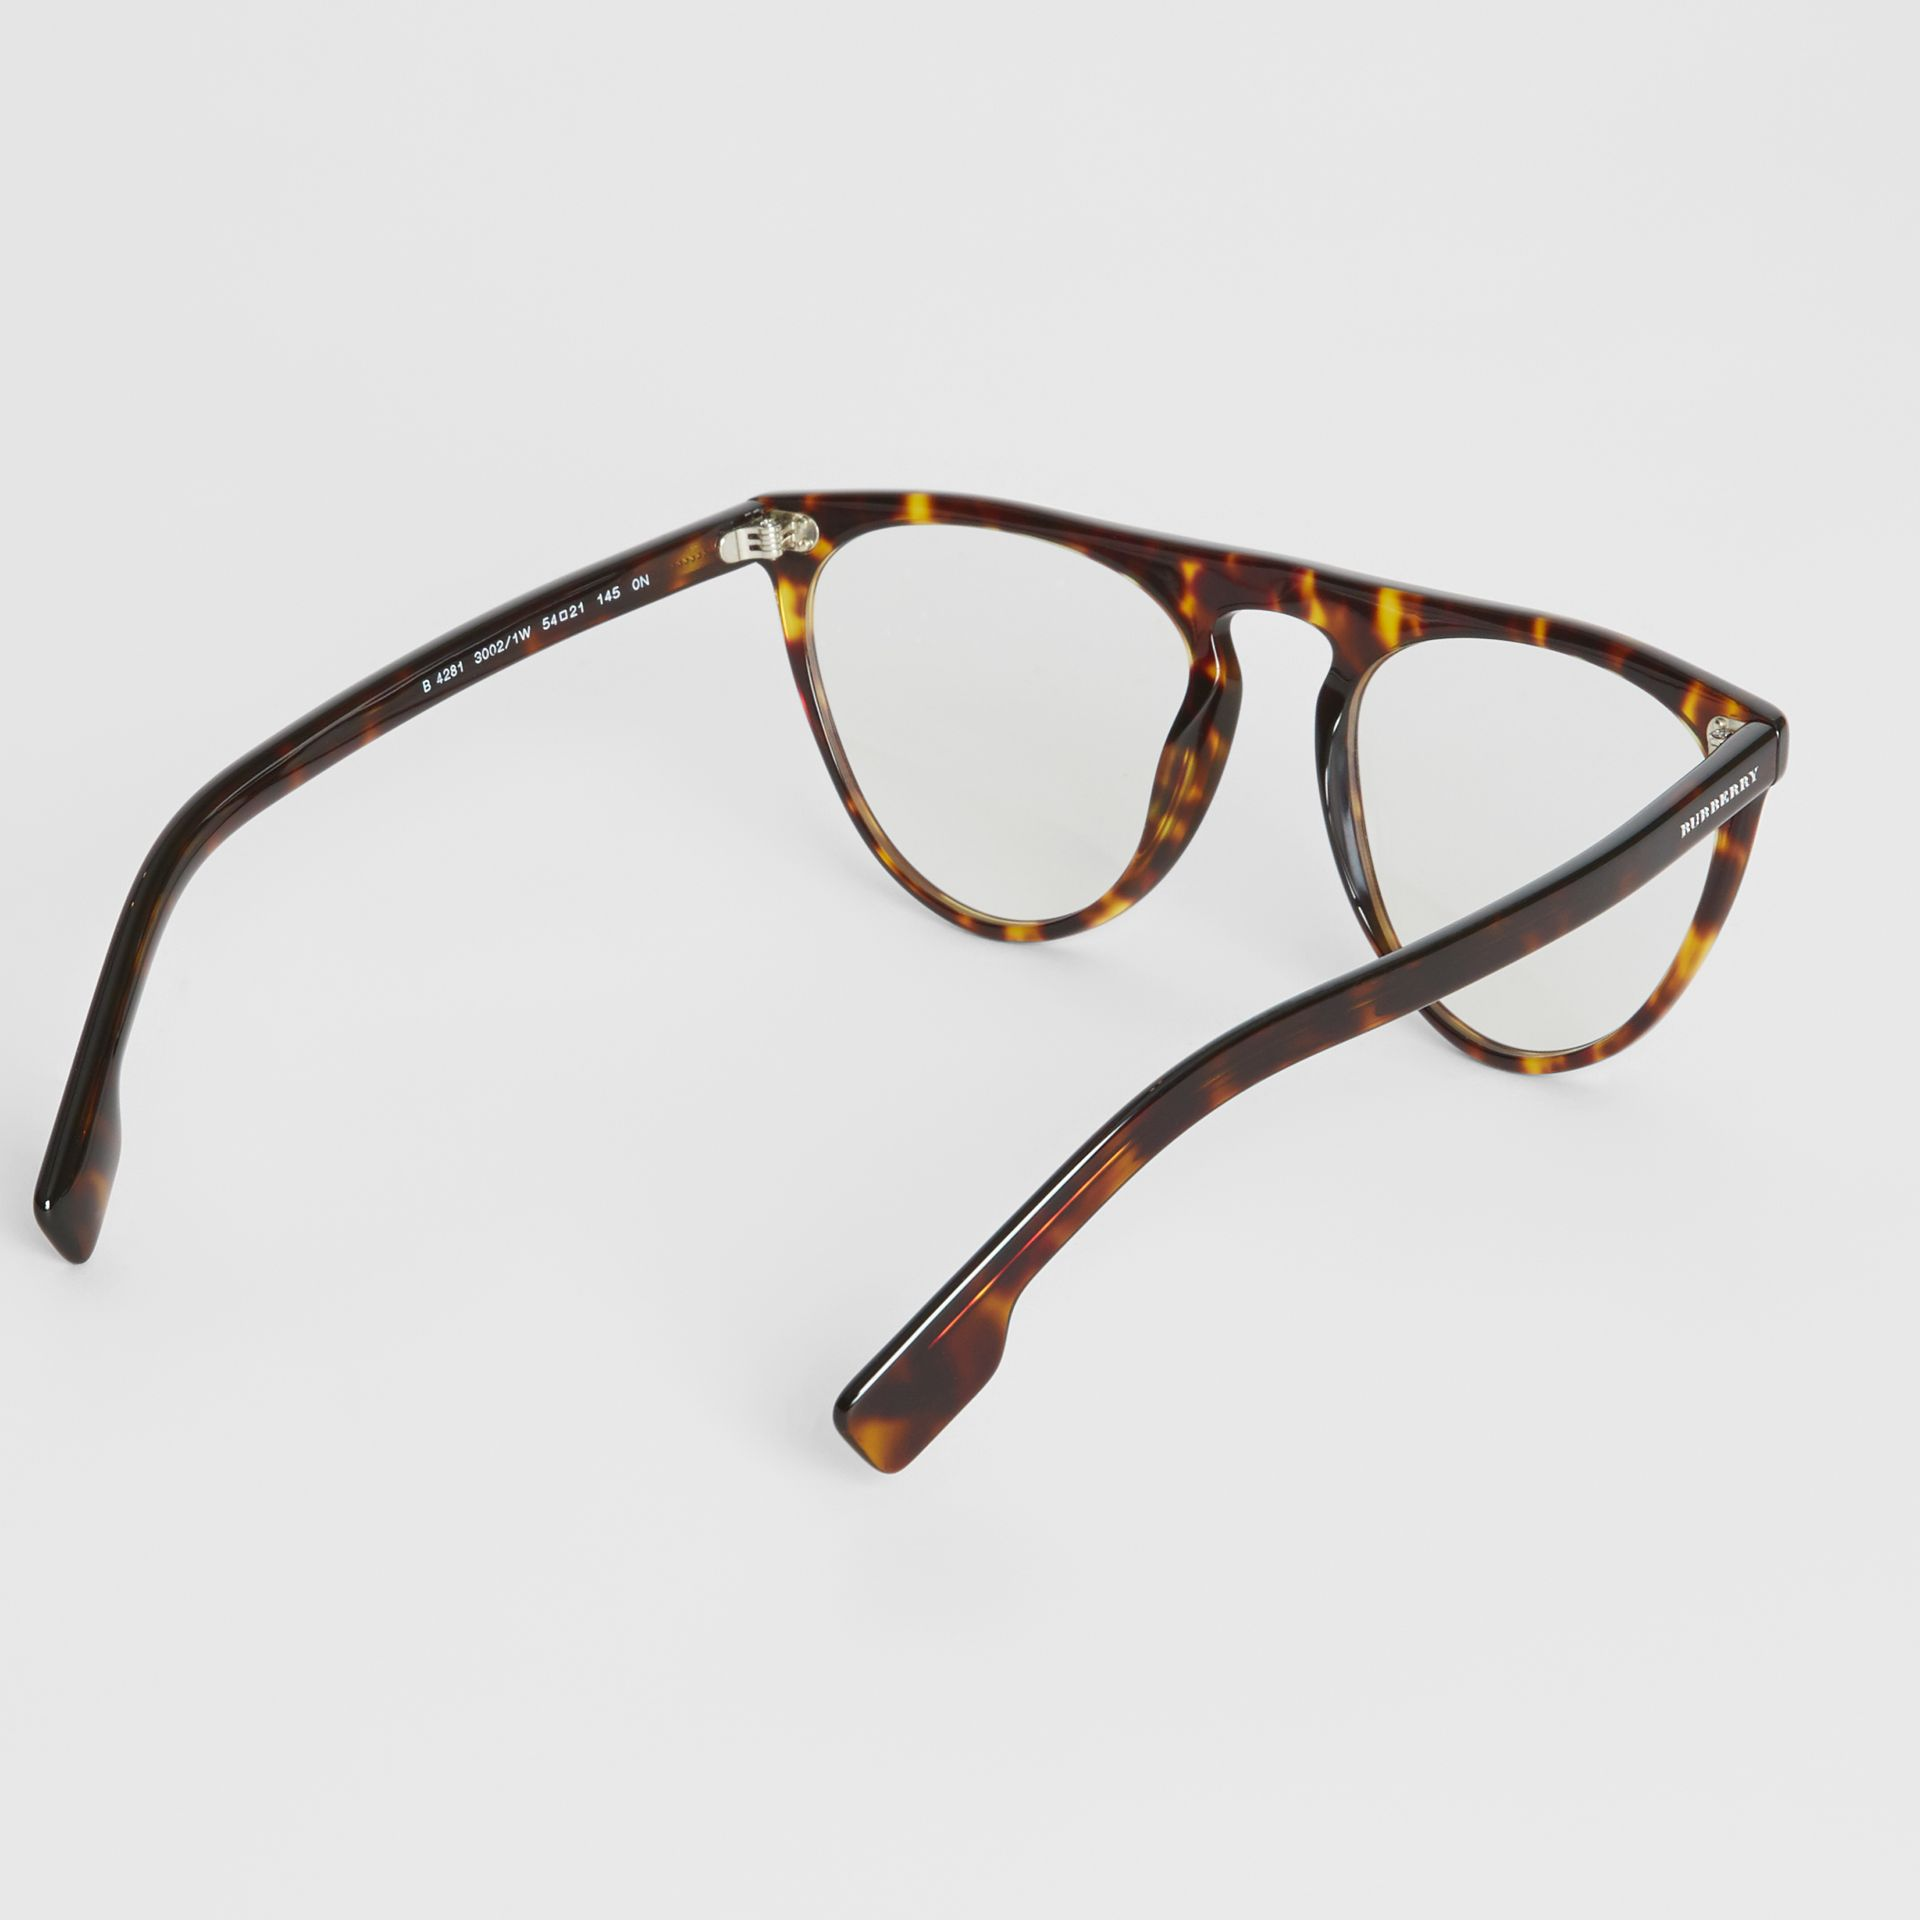 Keyhole D-shaped Optical Frames in Tortoise Shell - Men | Burberry - gallery image 4